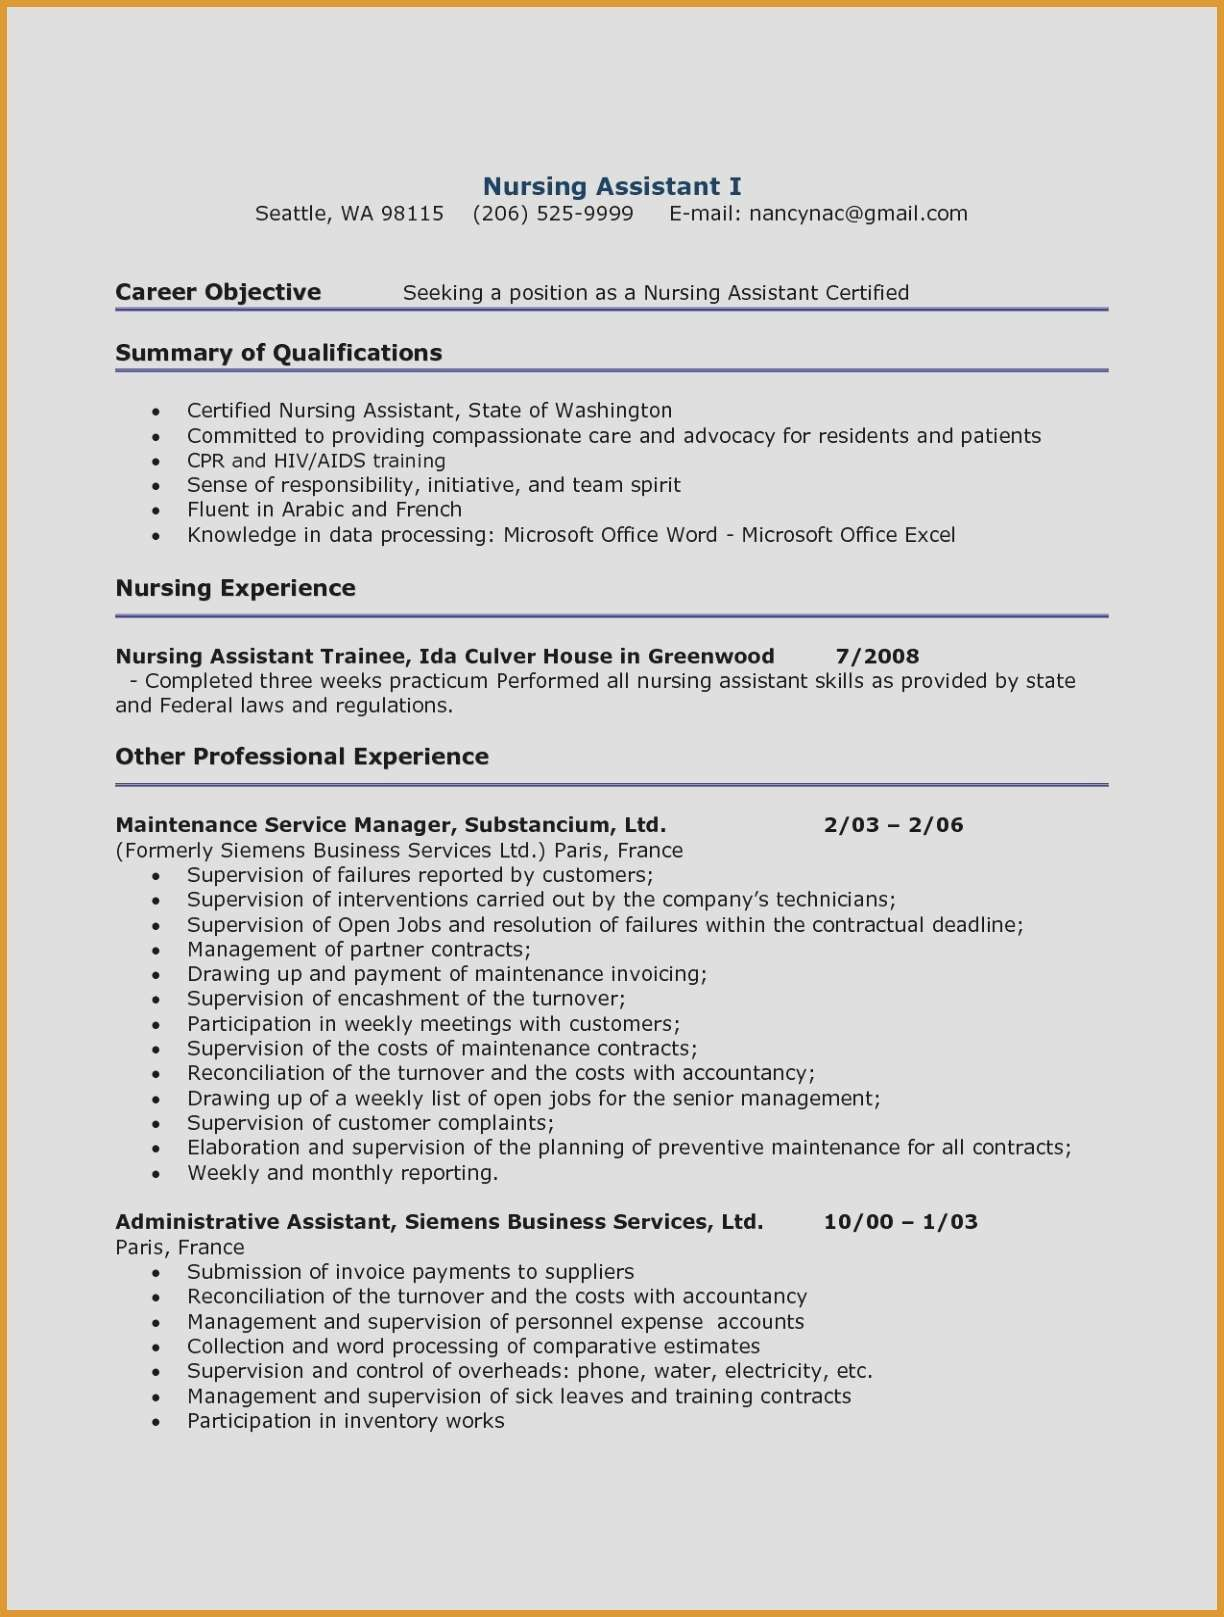 Part Time Job Offer Letter Template - Resume for Part Time Job Unique 20 Work Experience Resume Example